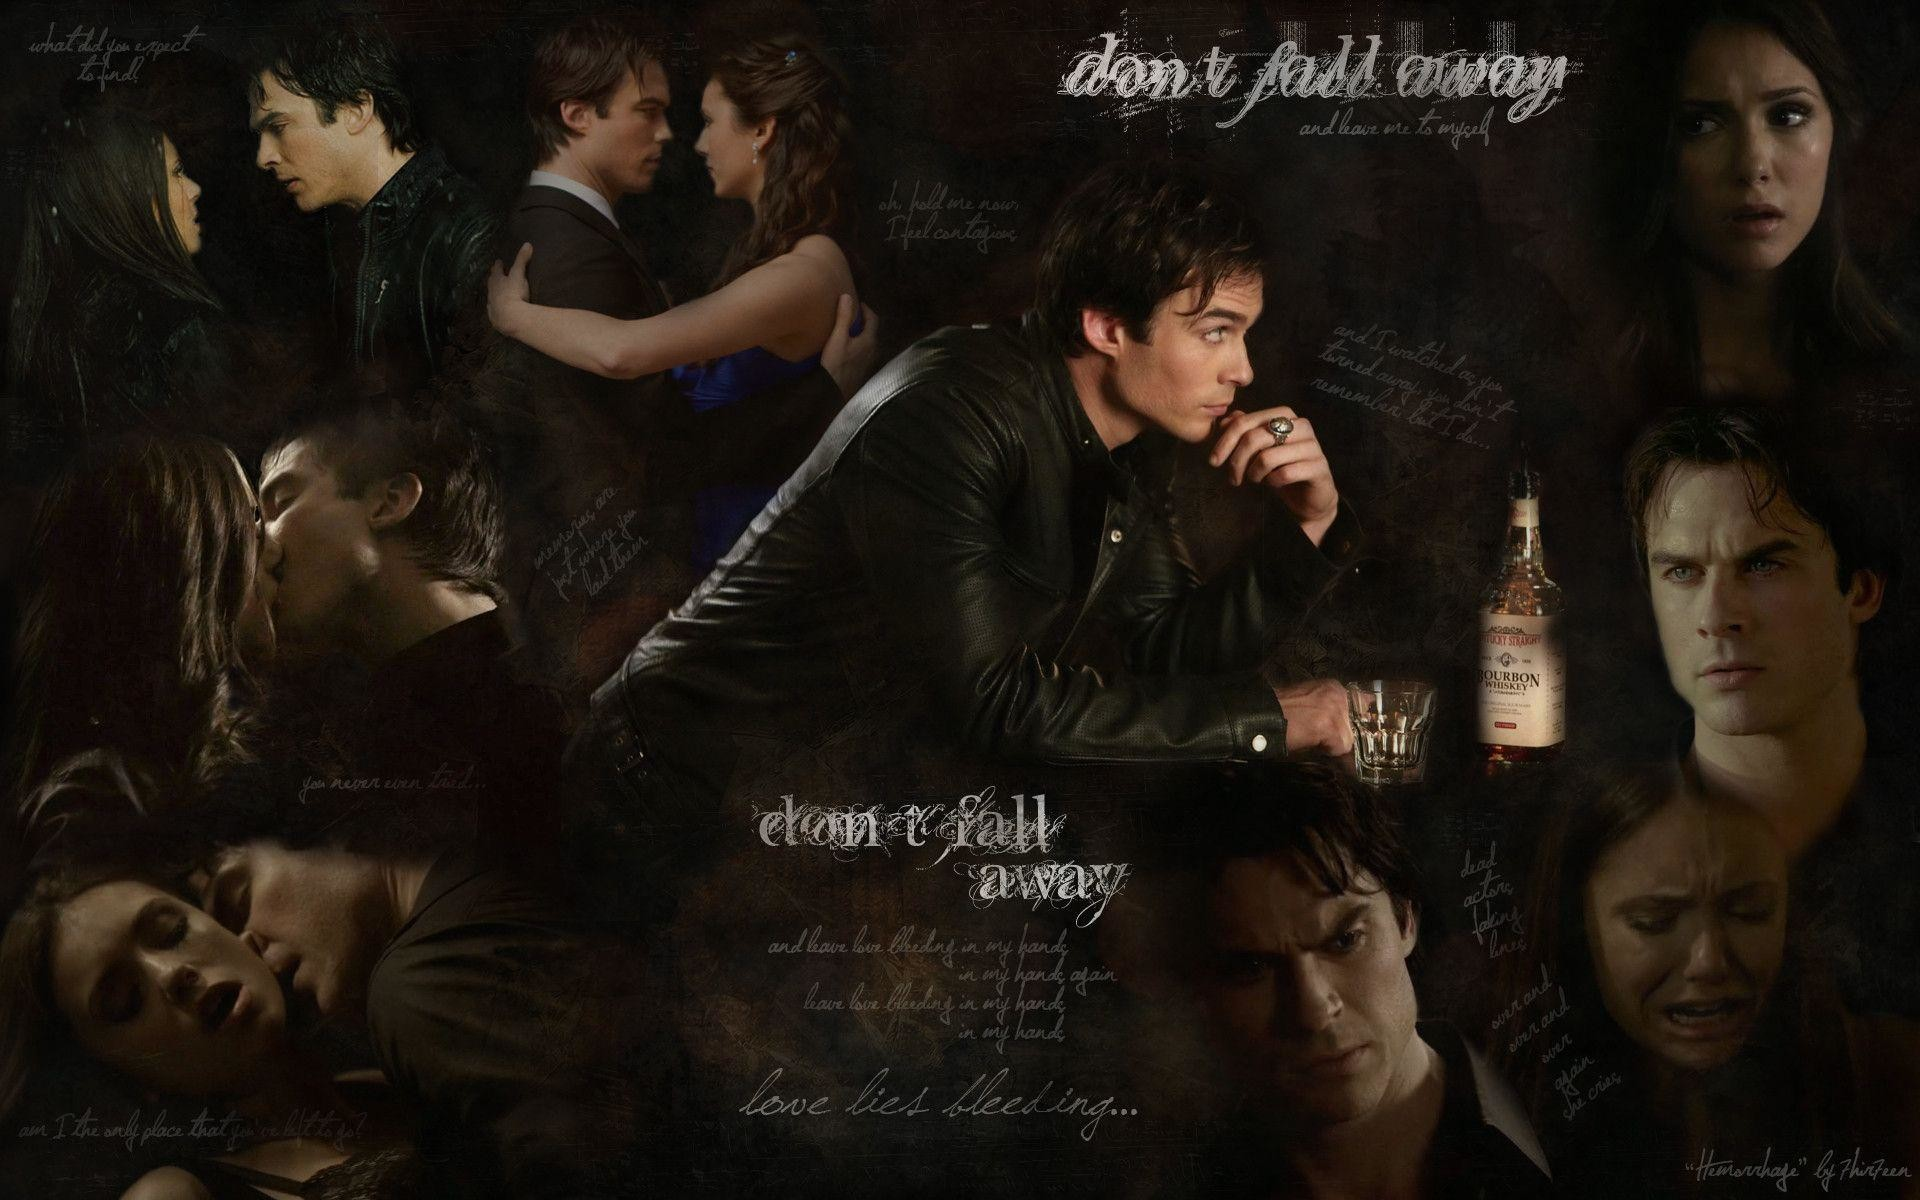 Wallpaper The Vampire Diaries: Vampire Diaries Wallpaper Damon And Elena (74+ Images